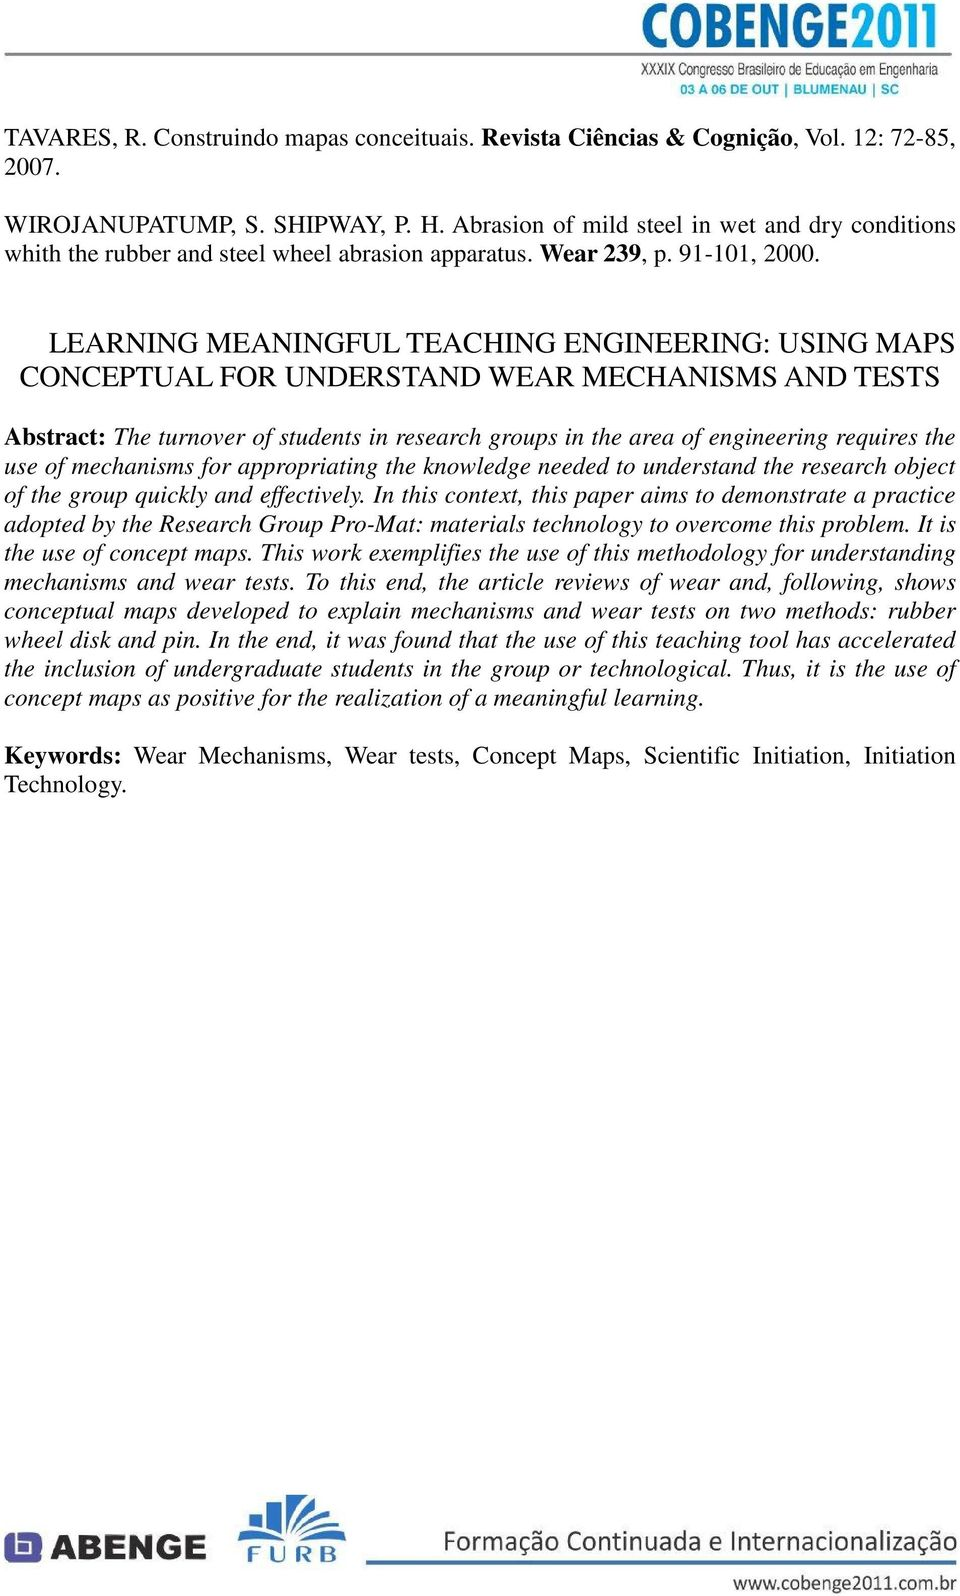 LEARNING MEANINGFUL TEACHING ENGINEERING: USING MAPS CONCEPTUAL FOR UNDERSTAND WEAR MECHANISMS AND TESTS Abstract: The turnover of students in research groups in the area of engineering requires the